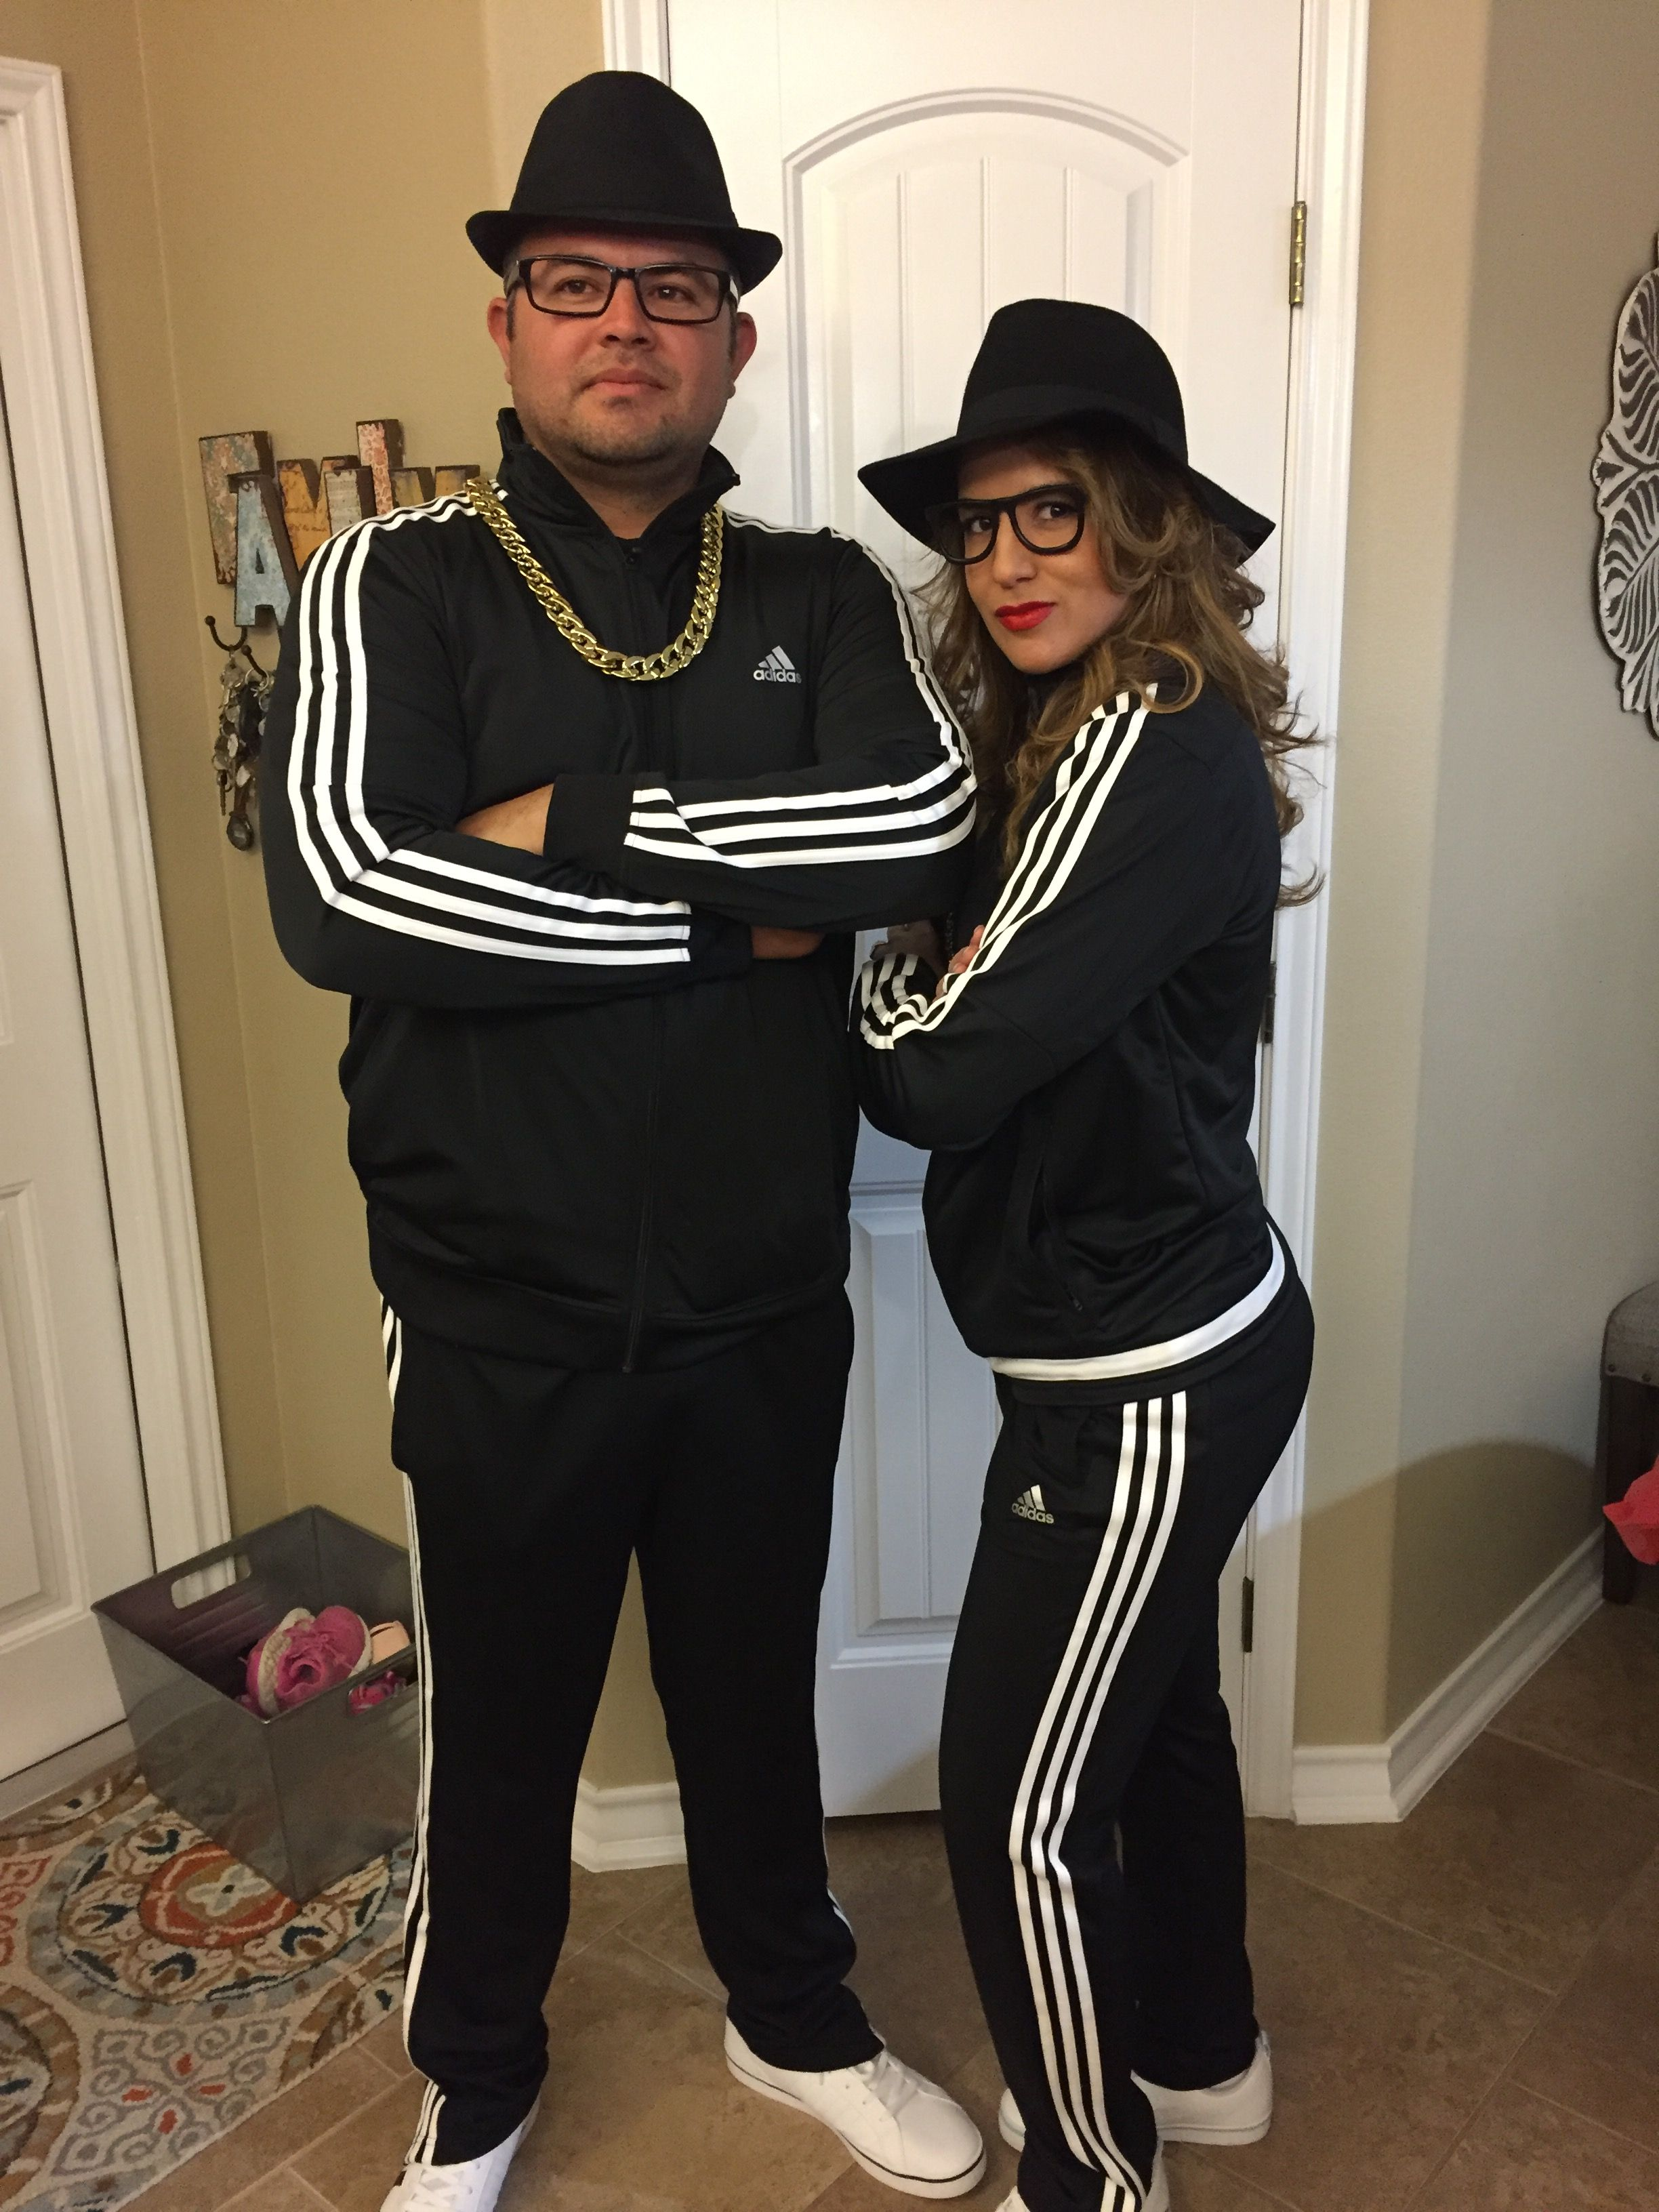 80s theme party. Run DMC | Party Planning | Pinterest | 80s theme ...